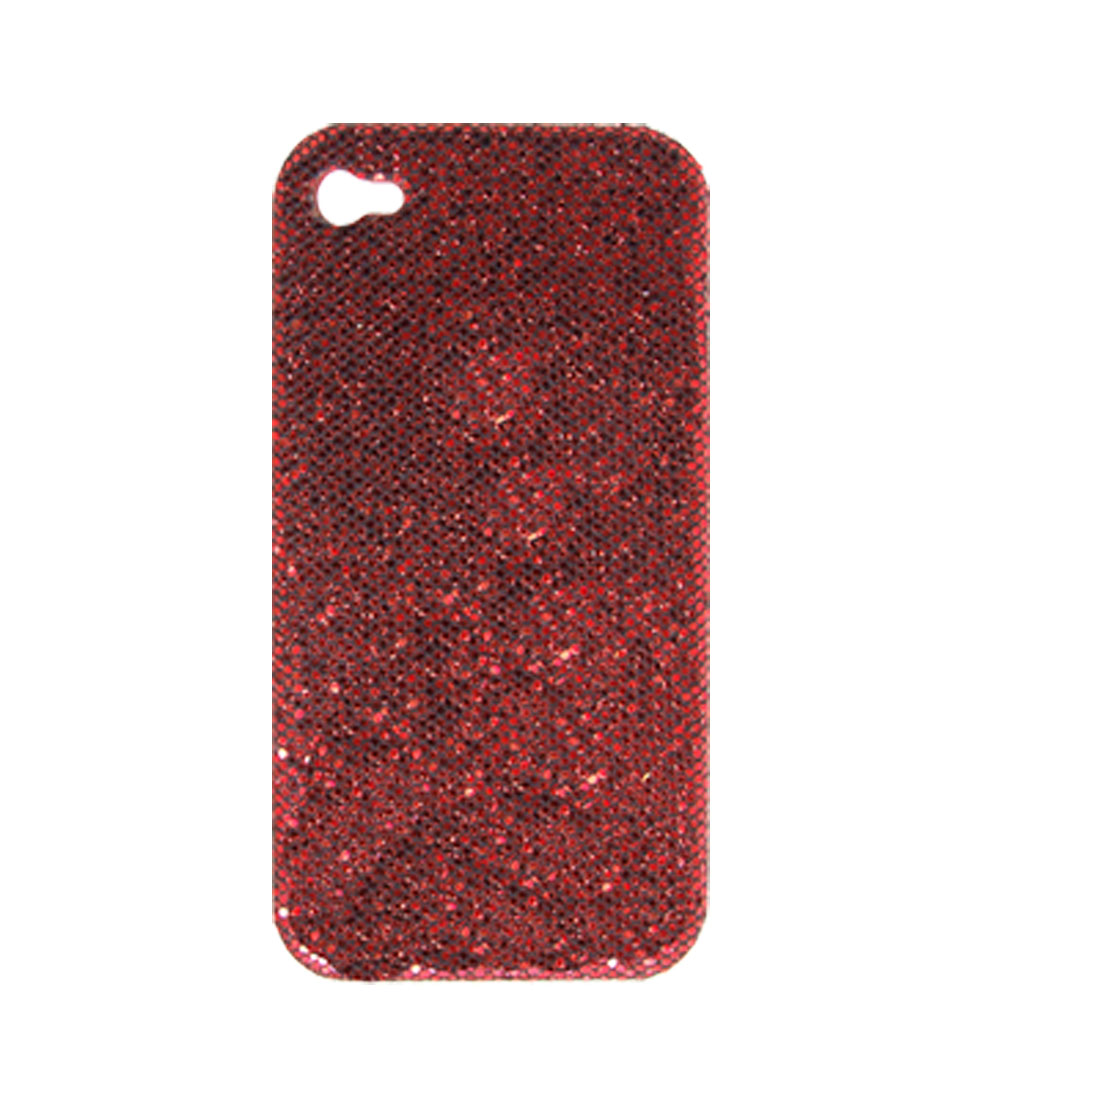 Red Glittery Paillette Hard Case Shell for iPhone 4 4G